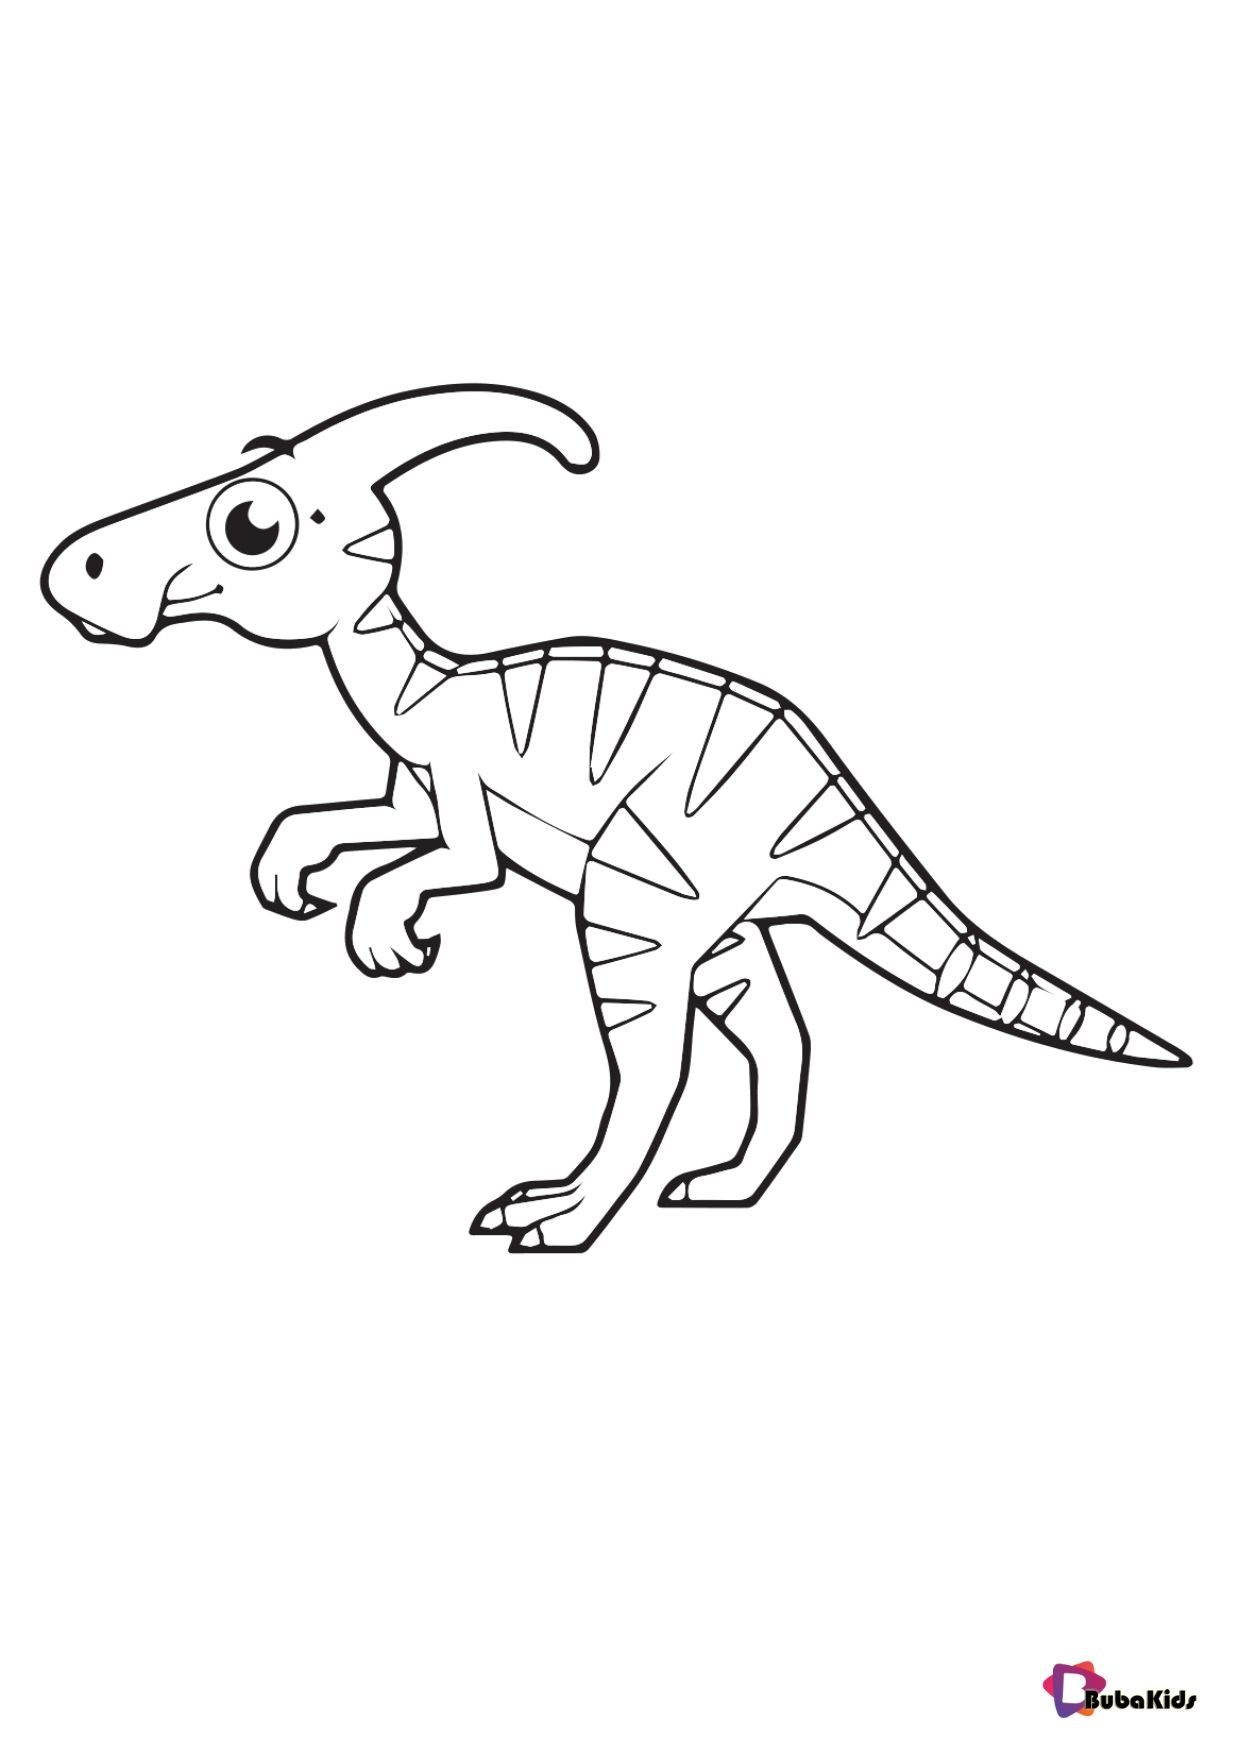 Free Picture To Download And Print Baby Dinosaur Coloring Page Collection Of Dinosaurs Coloring Pages Fo Dinosaur Coloring Dinosaur Coloring Pages Baby Prints